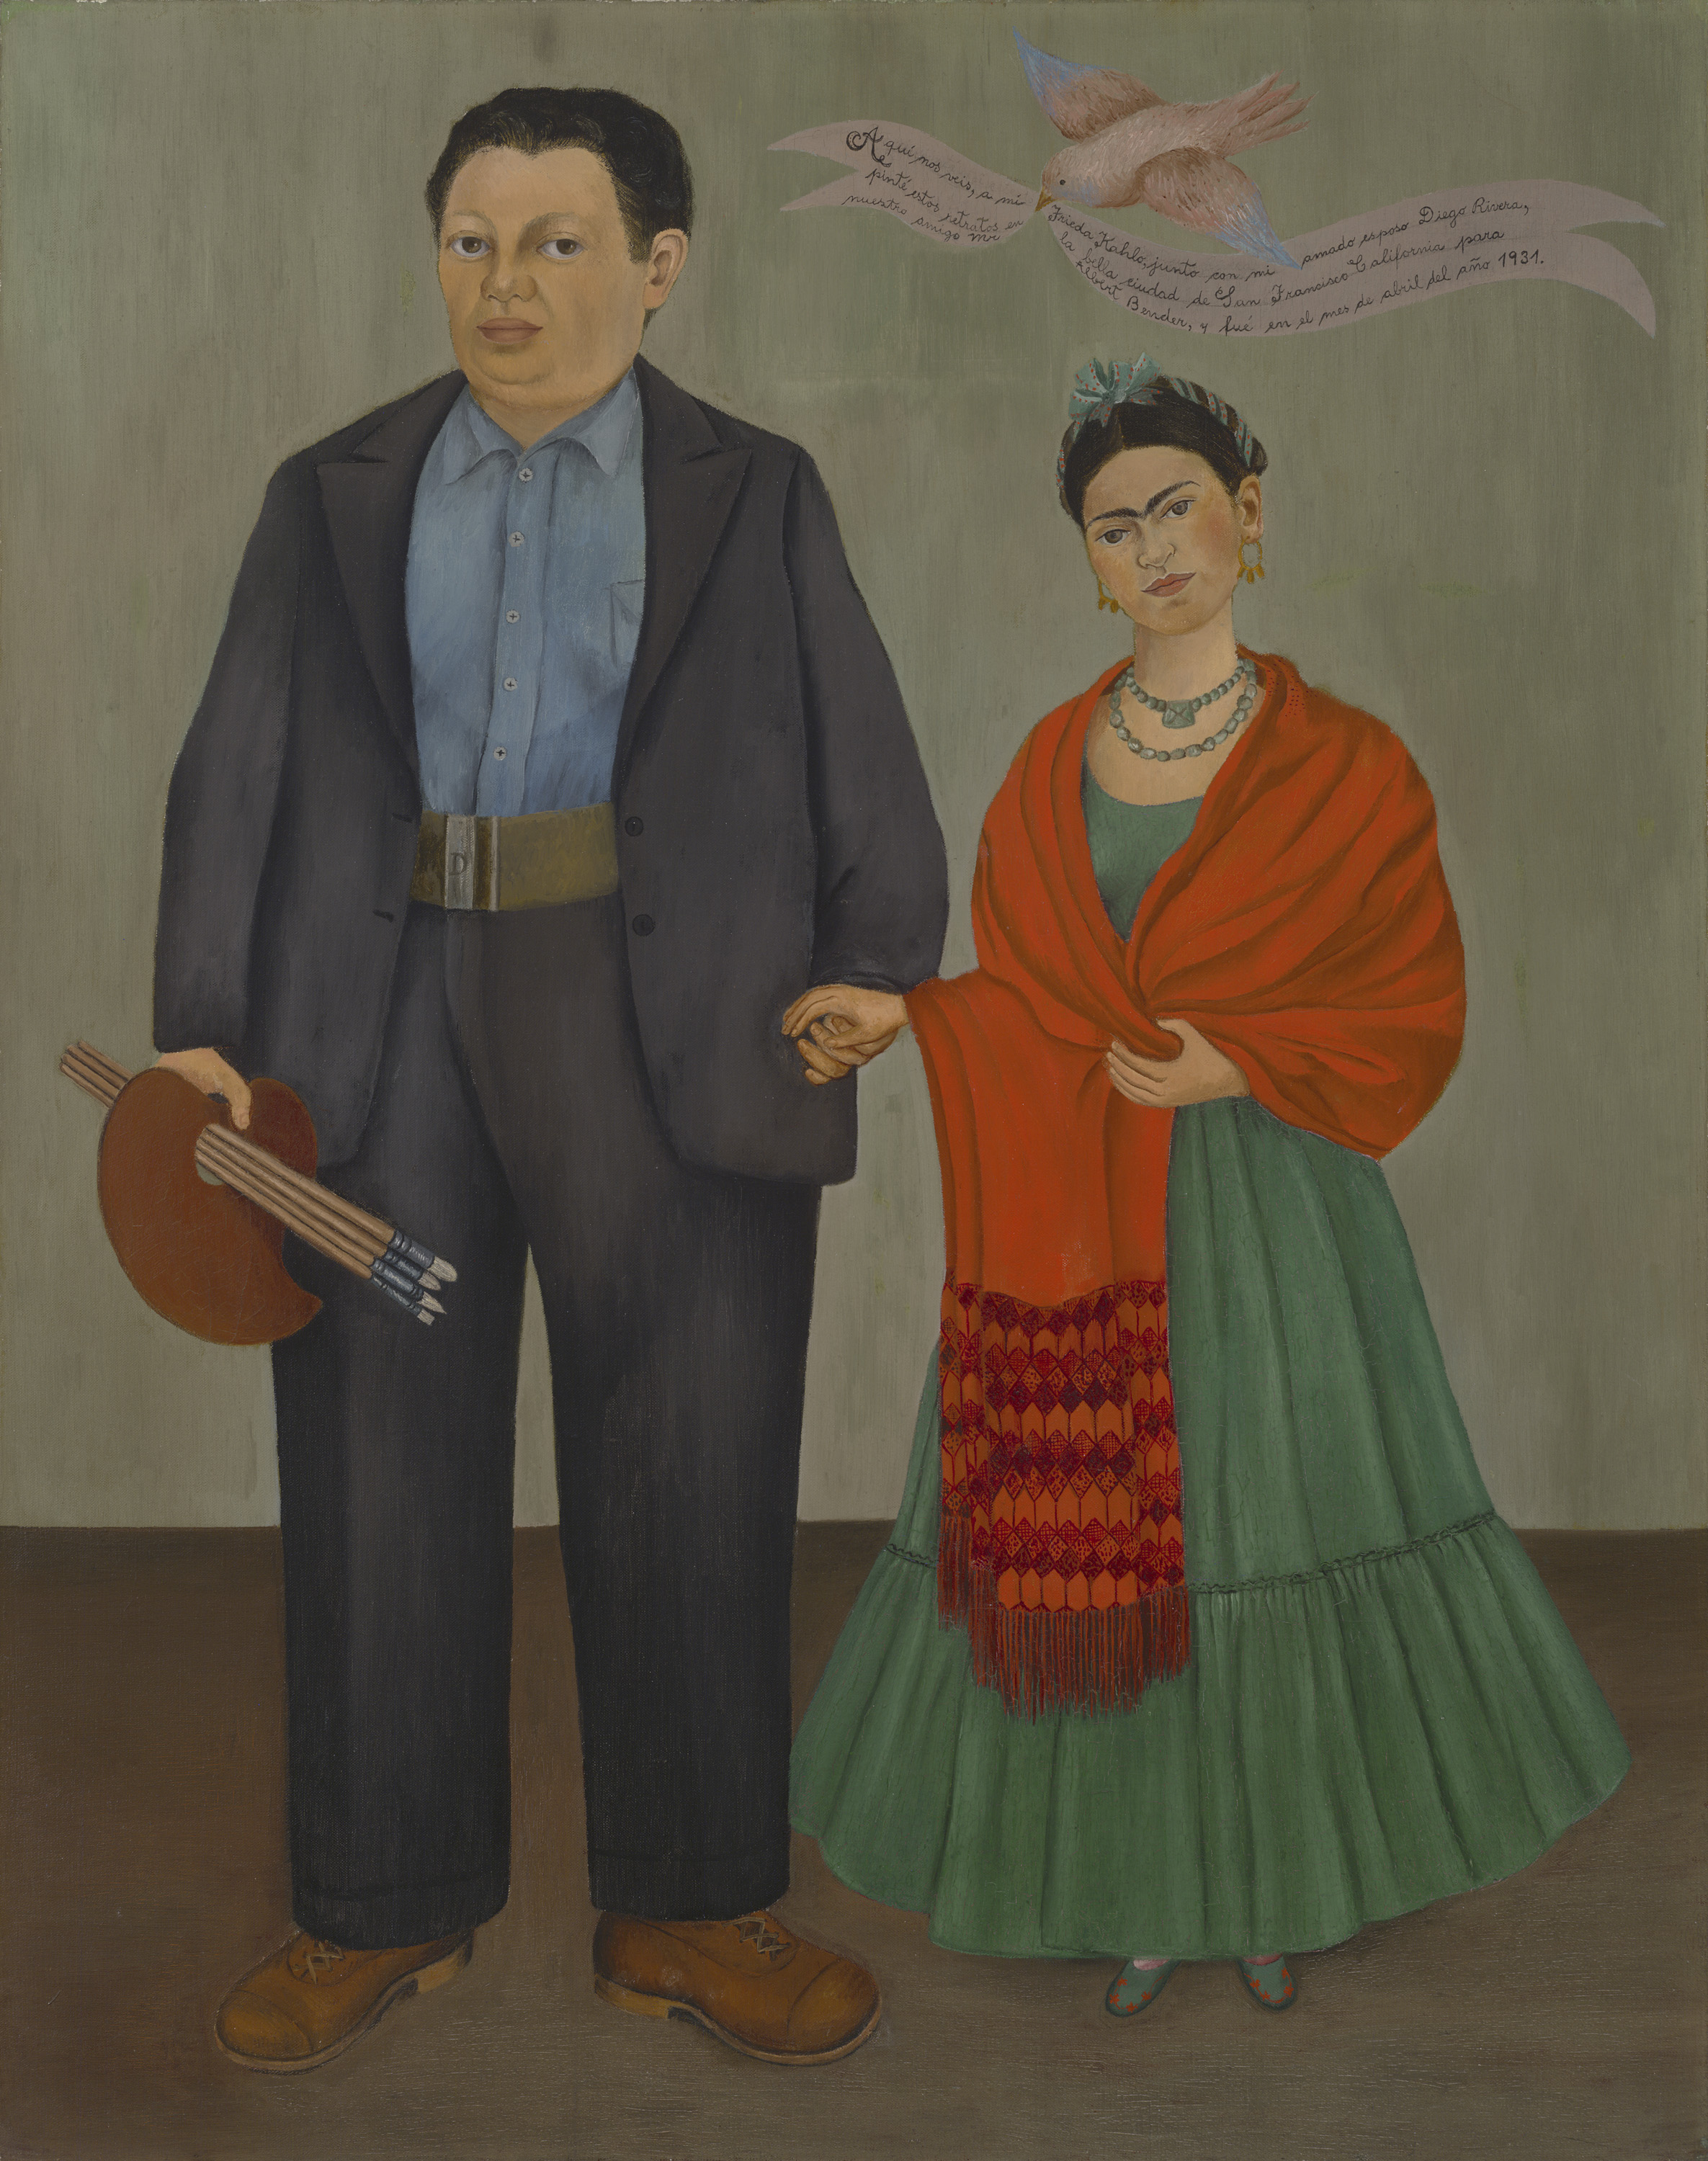 Caption: Frieda and Diego Rivera, Frida Kahlo, 1931, oil on canvas, , Credit: , San Francisco Museum of Modern Art, Albert M. Bender Collection, Gift of Albert M. Bender © 2014 Banco de México Diego Rivera Frida Kahlo Museums Trust, Mexico, D.F.  A